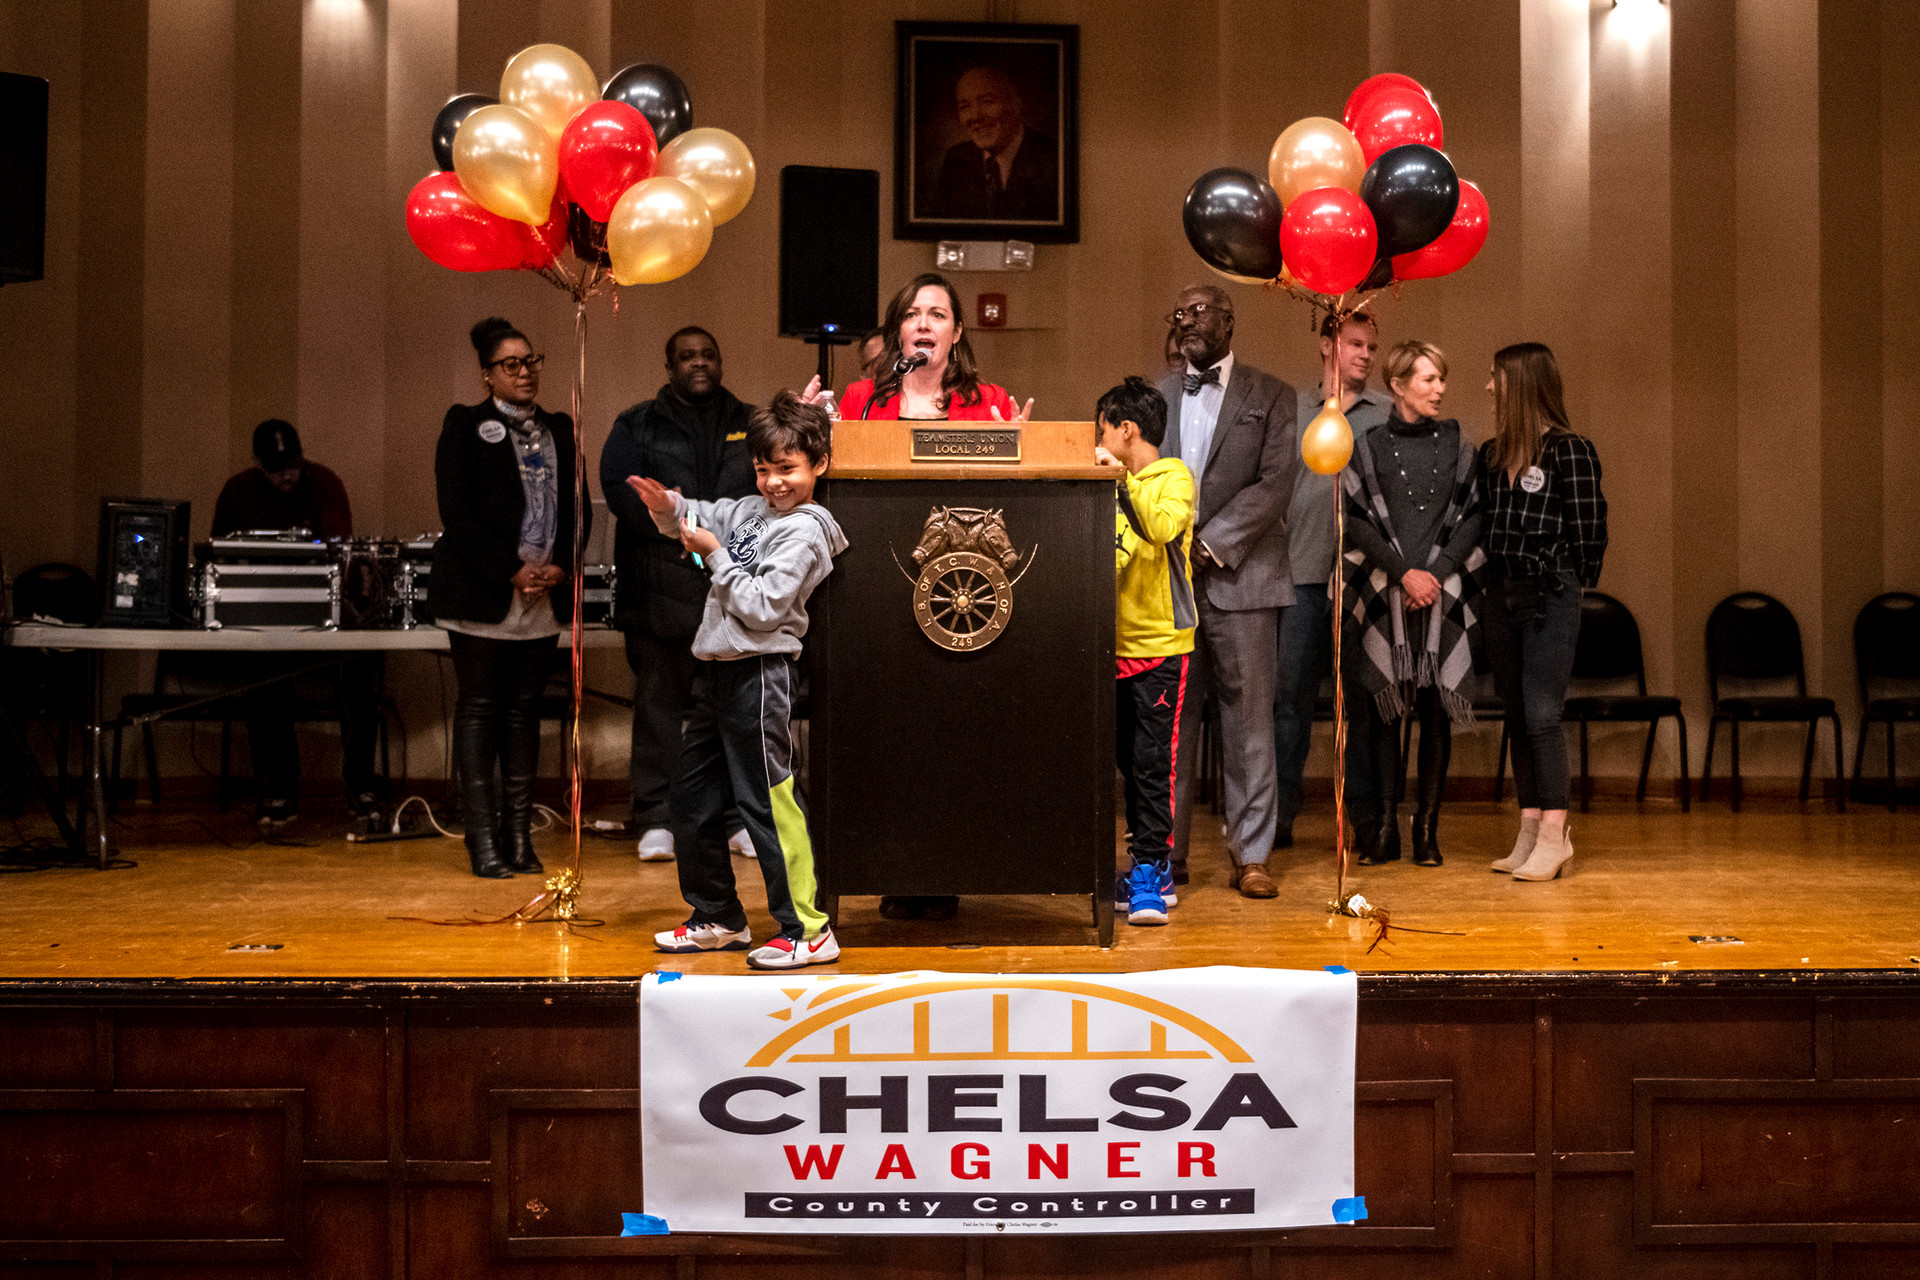 Chelsa Wagner Allegheny County Controller speaks to supporters during her re-election campaign launch party for Allegheny County Controller while surrounded by her family, Wednesday, Jan. 16, 2019, at Teamster Temple in Lawrenceville.